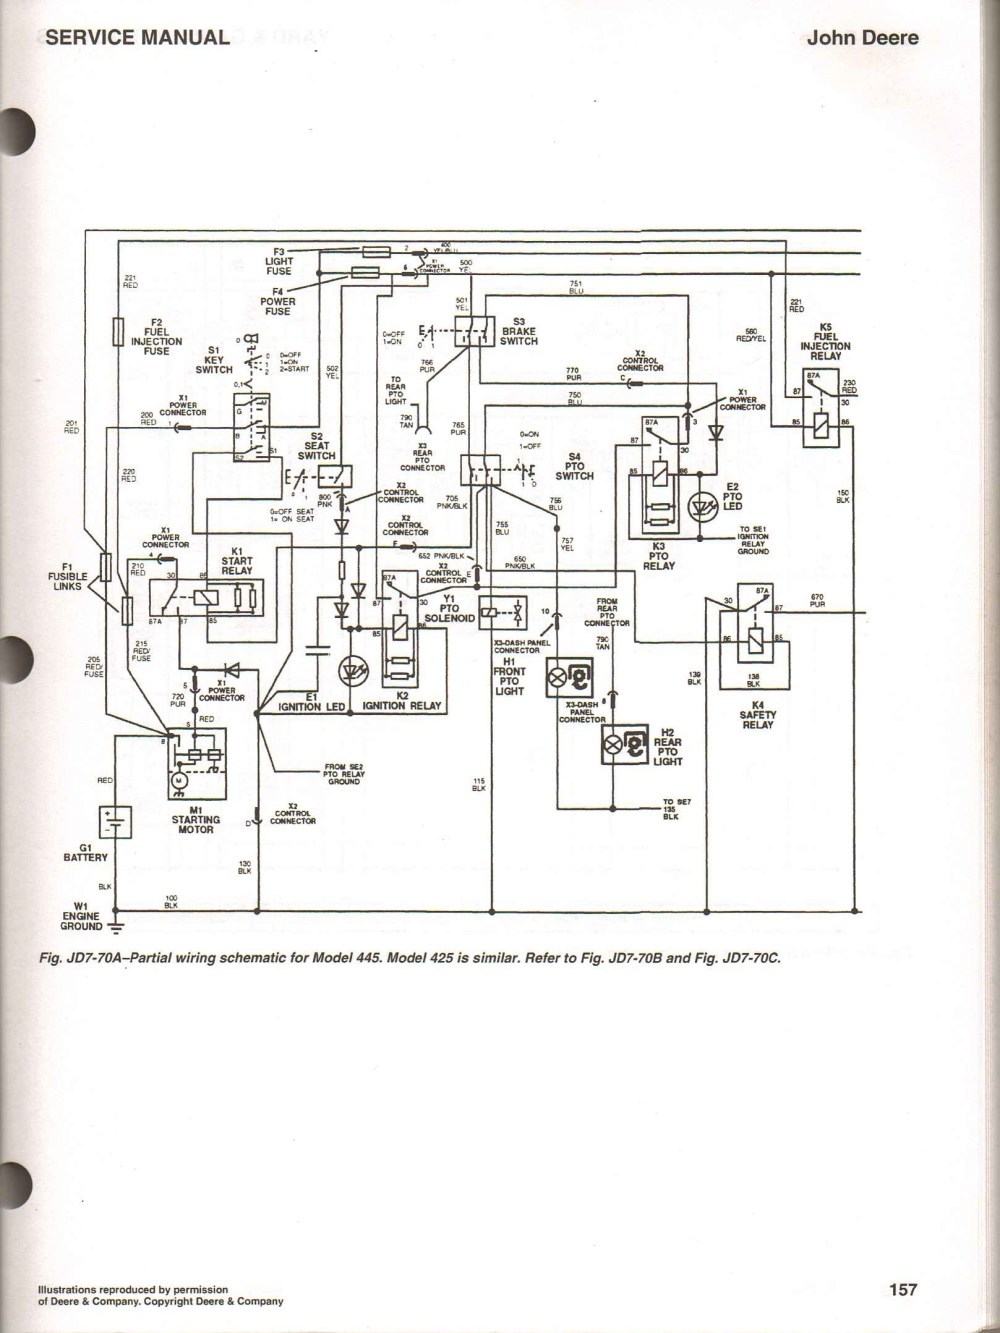 medium resolution of jd 425 wiring diagram wiring diagram for you john deere 425 lawn tractor mower wiring schematics